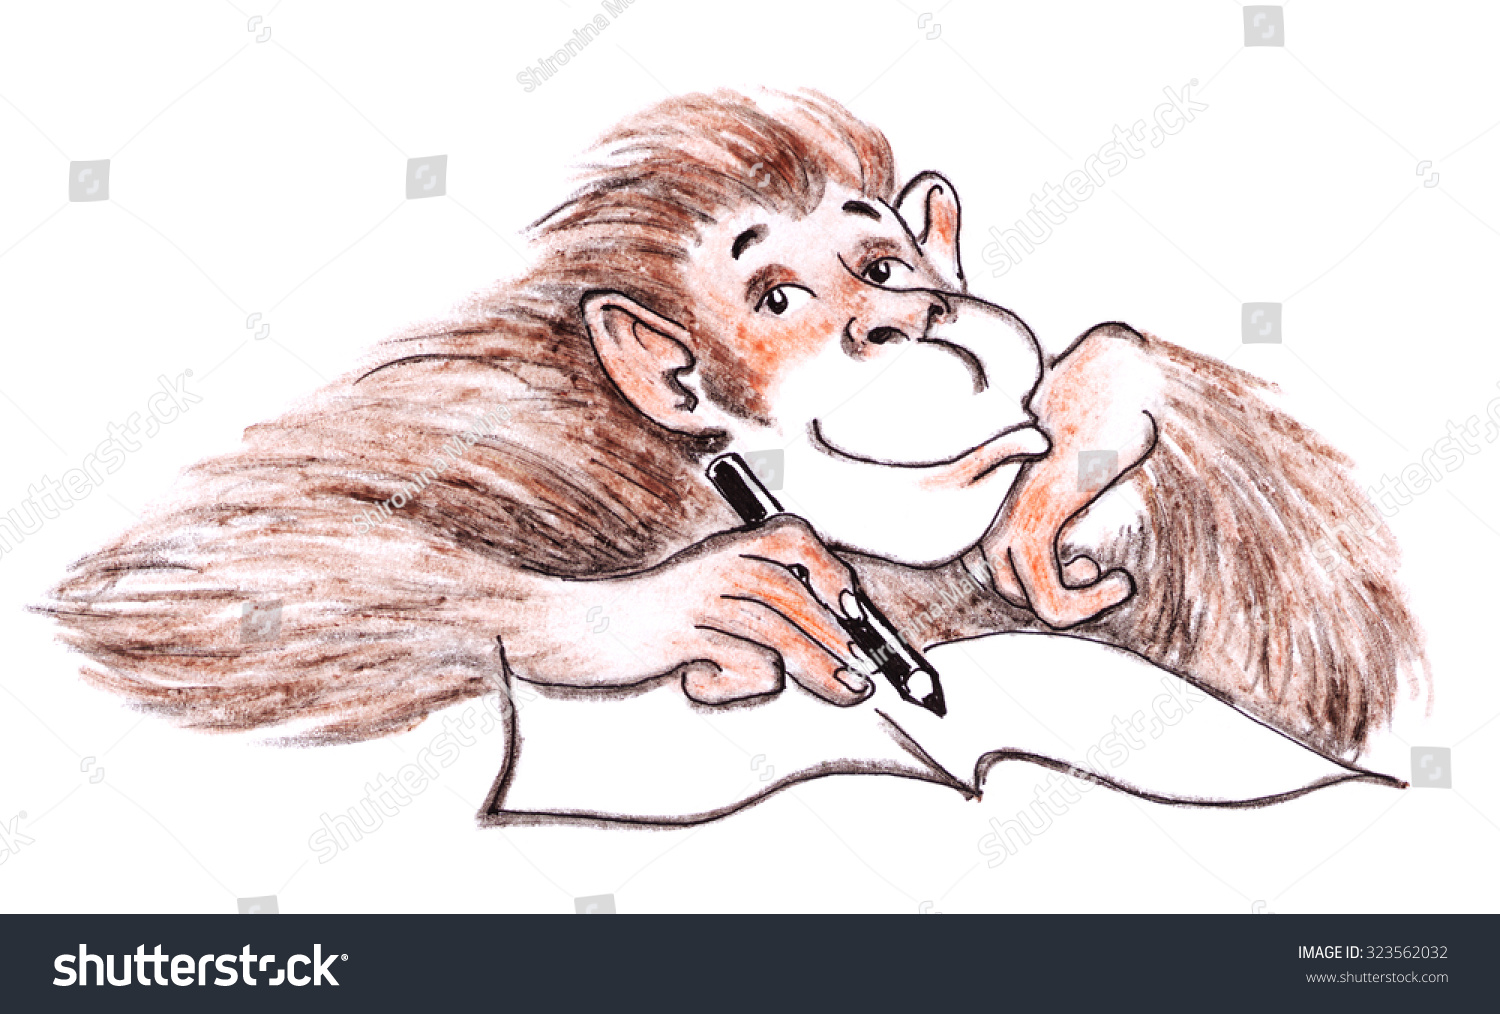 Pencil sketch brown monkey hand drawing animal illustration funny chimpanzee with book and pen